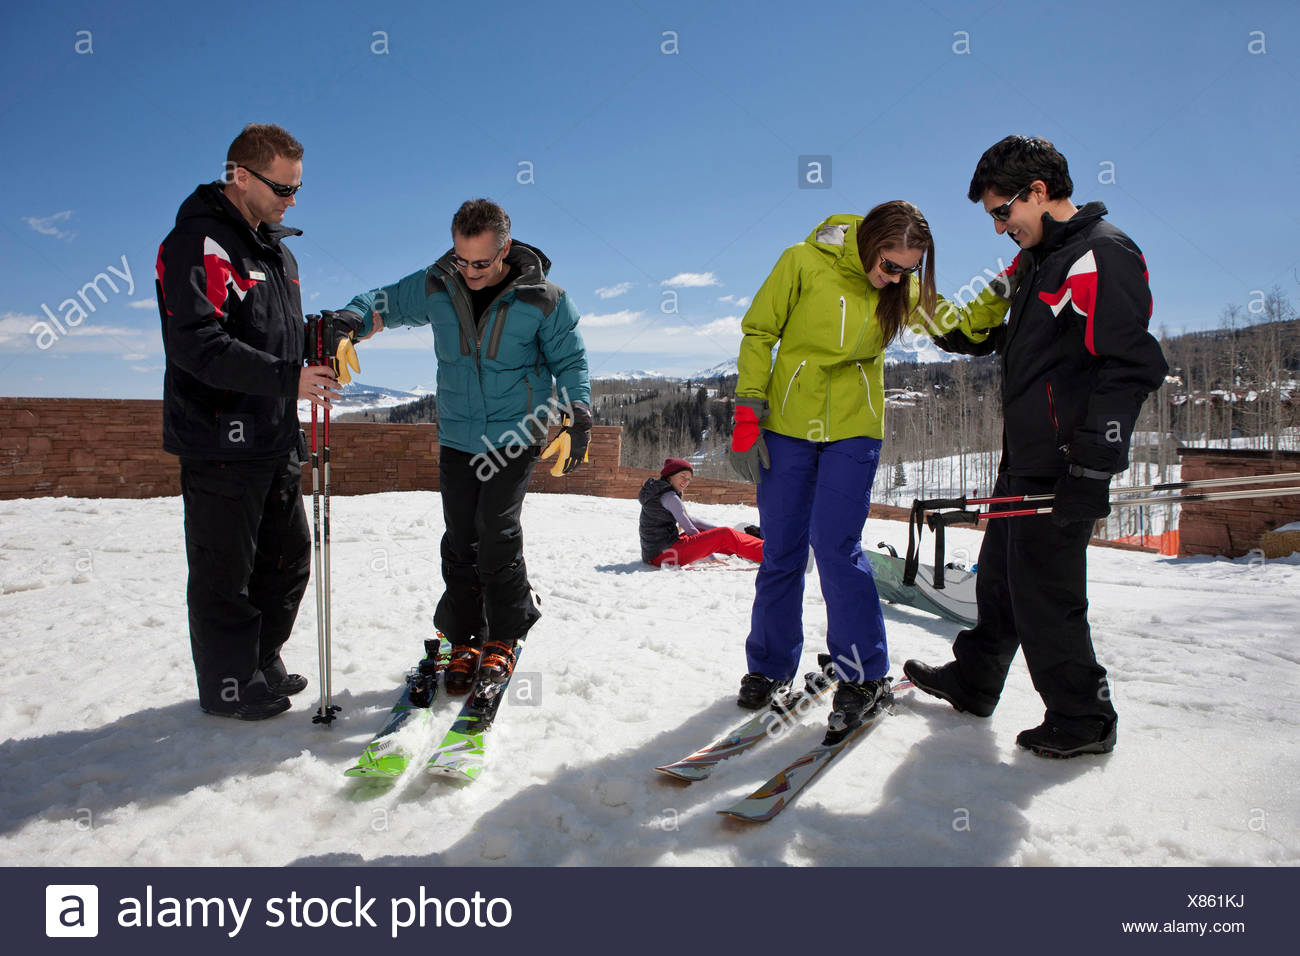 Mature man and young woman with ski instructors on ski slope - Stock Image